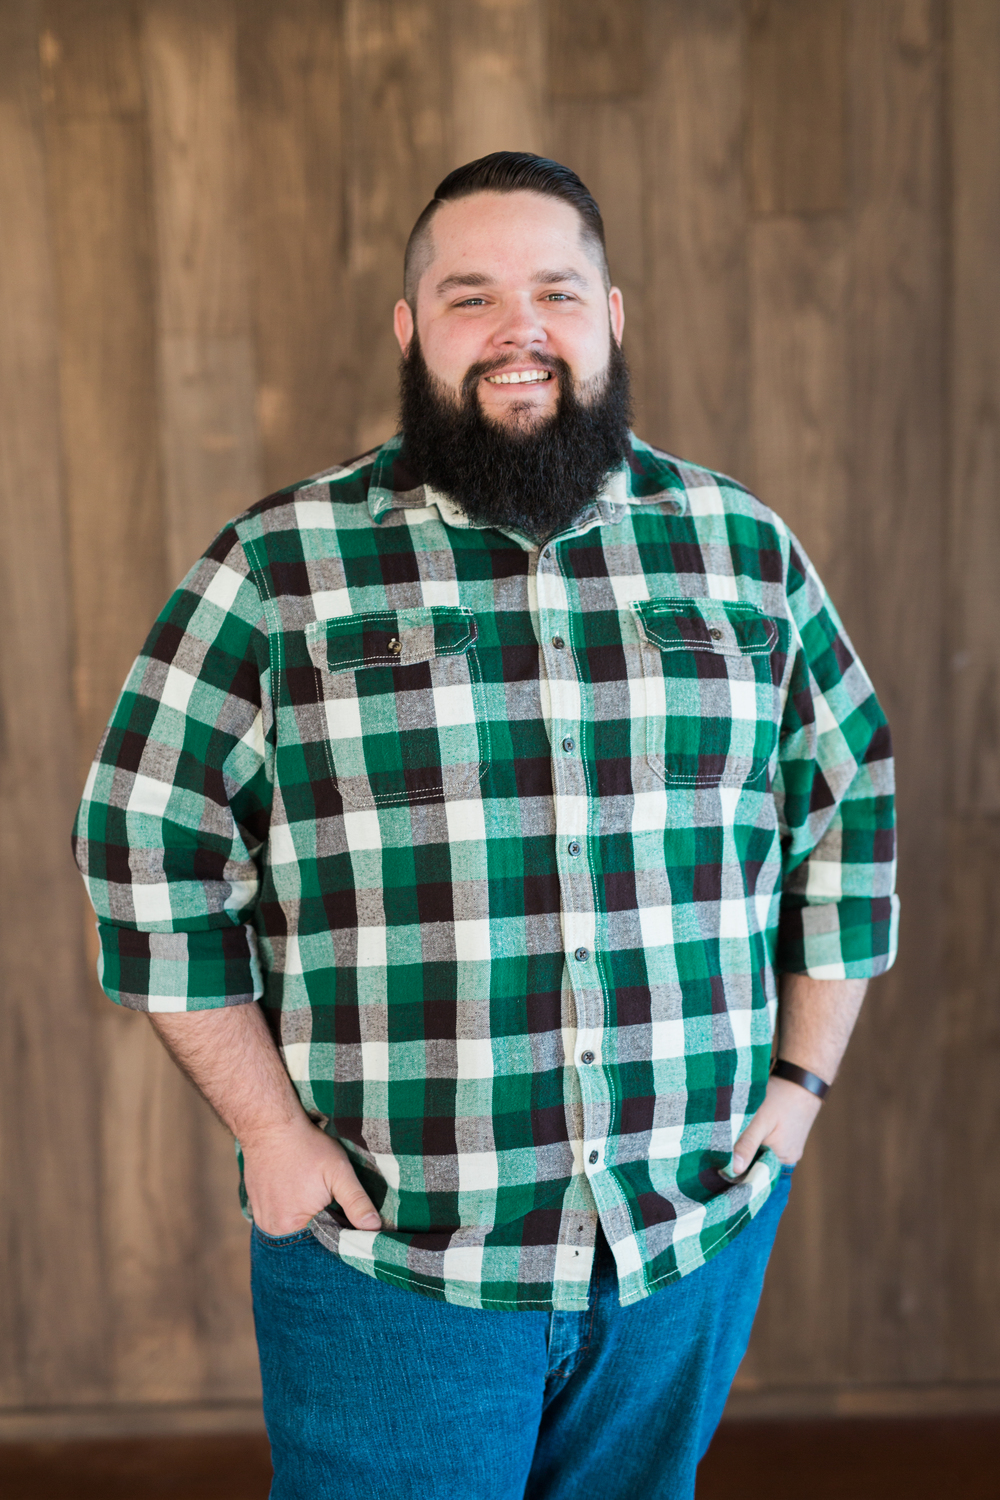 Student Pastor Grant Finch has served with Hulen Street Church since 2013.